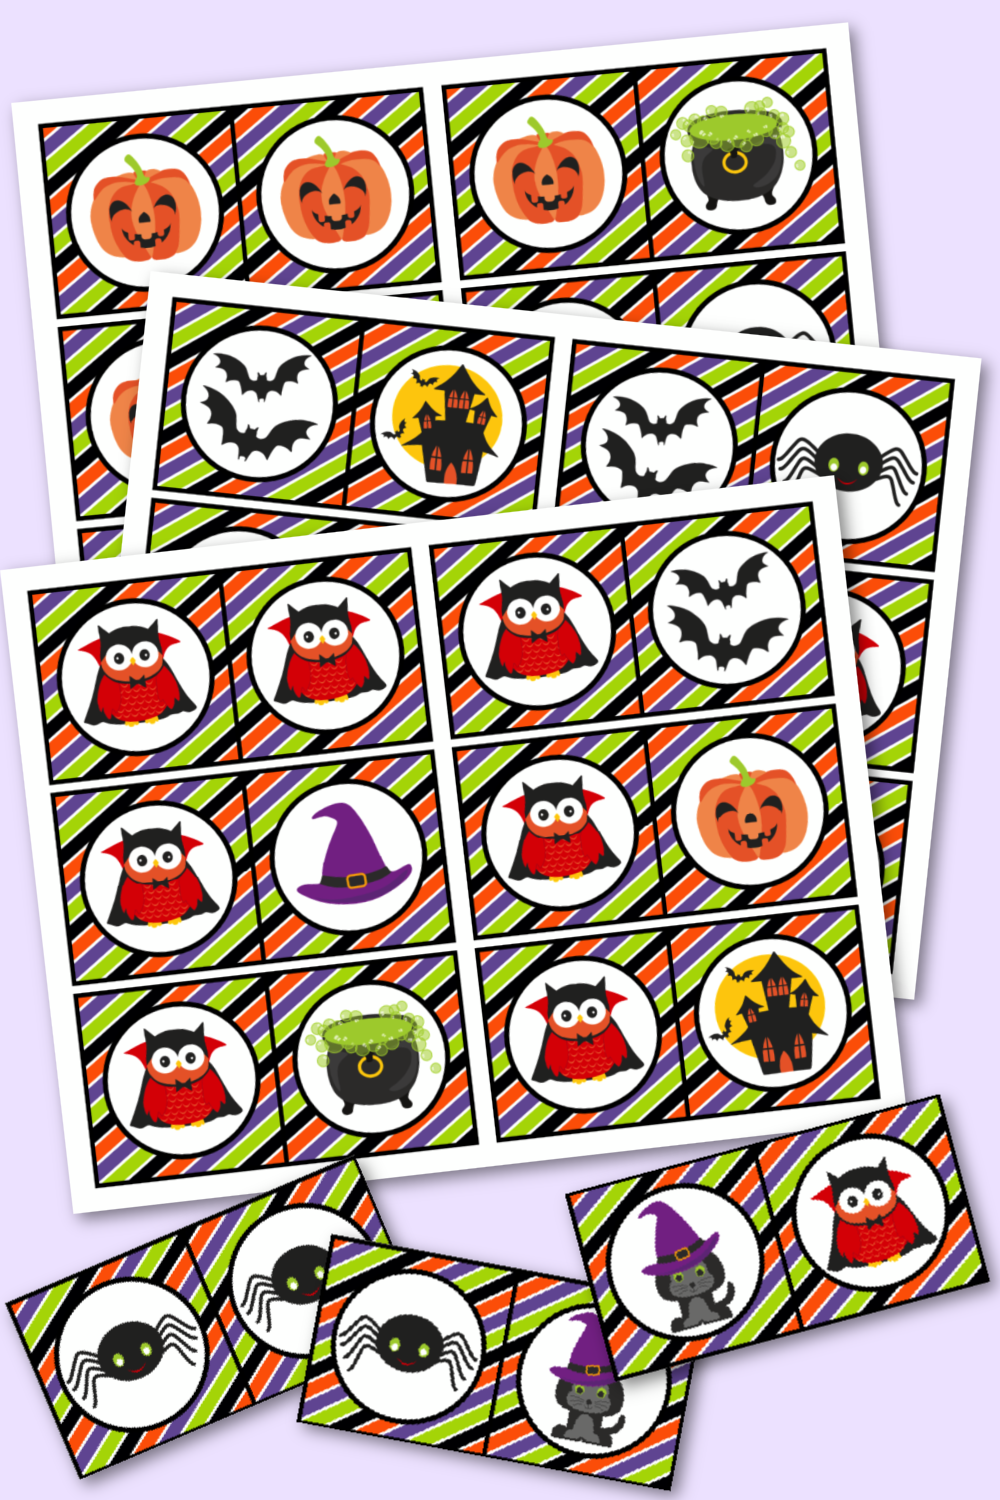 https://www.happygoluckyblog.com/wp-content/uploads/2020/10/Halloween-Dominoes-2.png